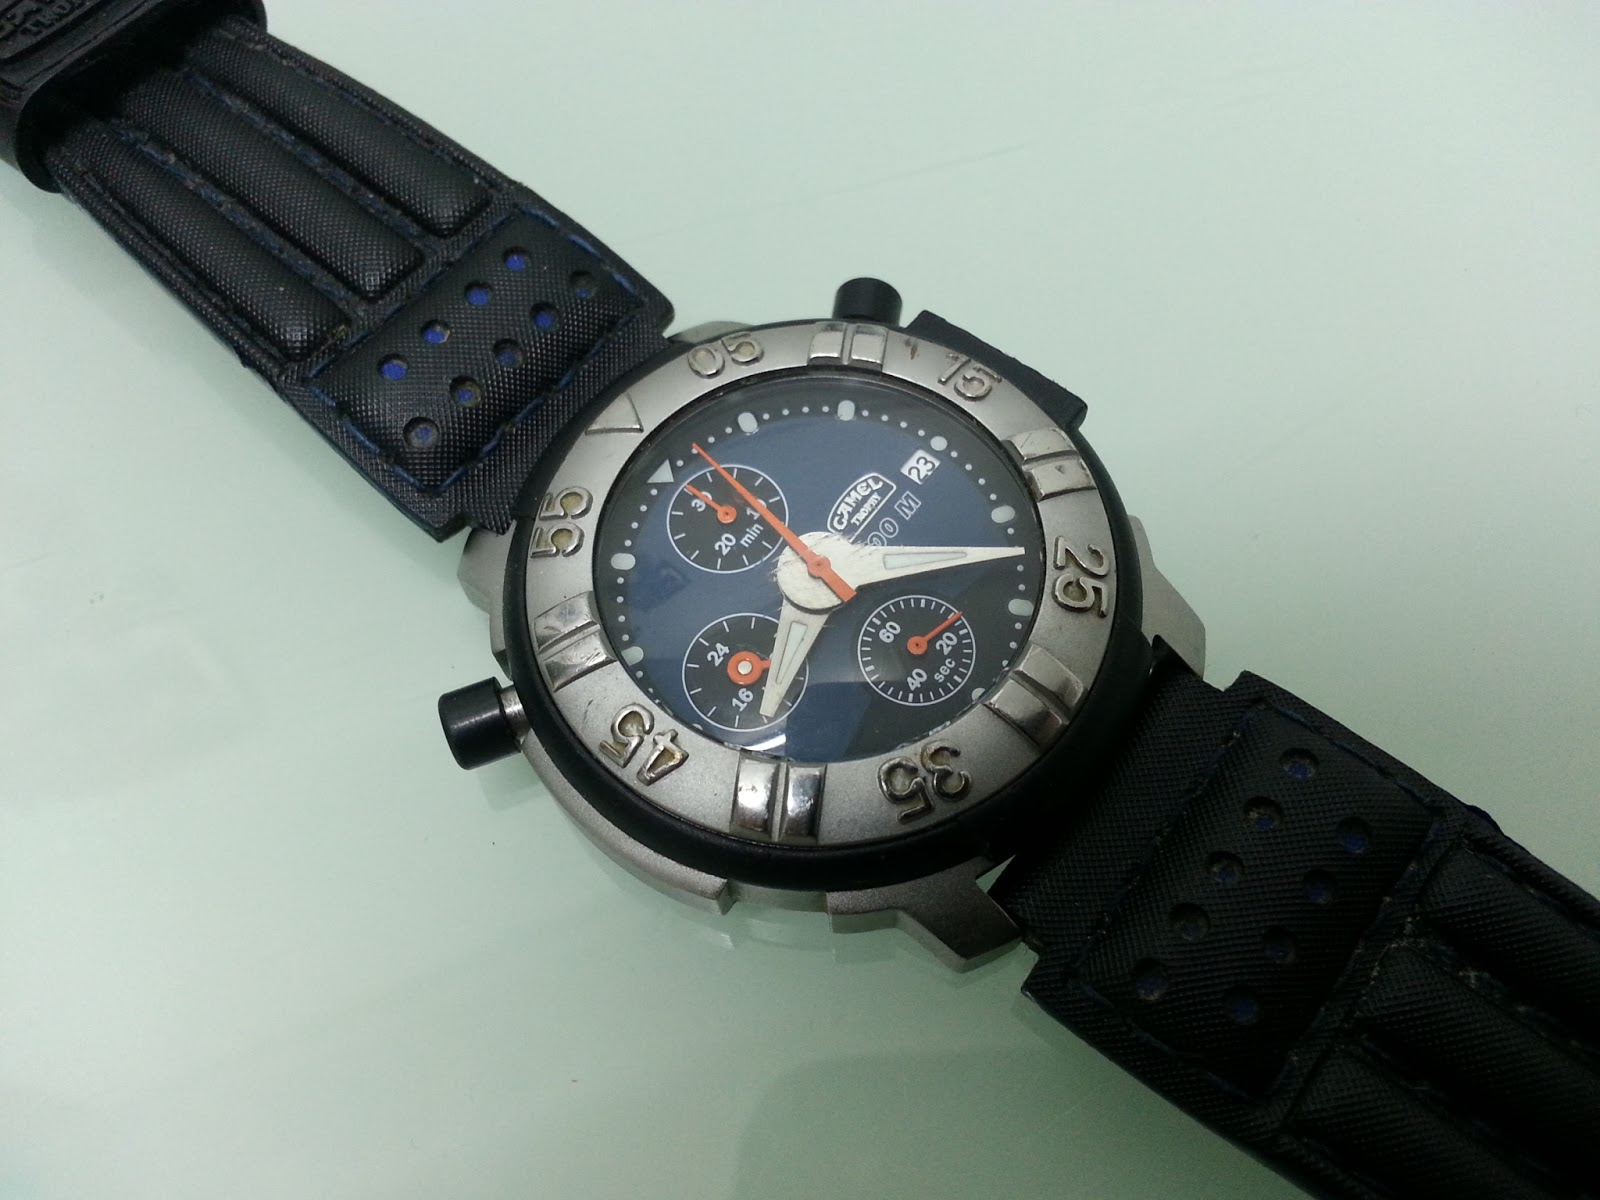 Koleksi camel trophy malaysia outdoors chrono blueface for Adventure watches